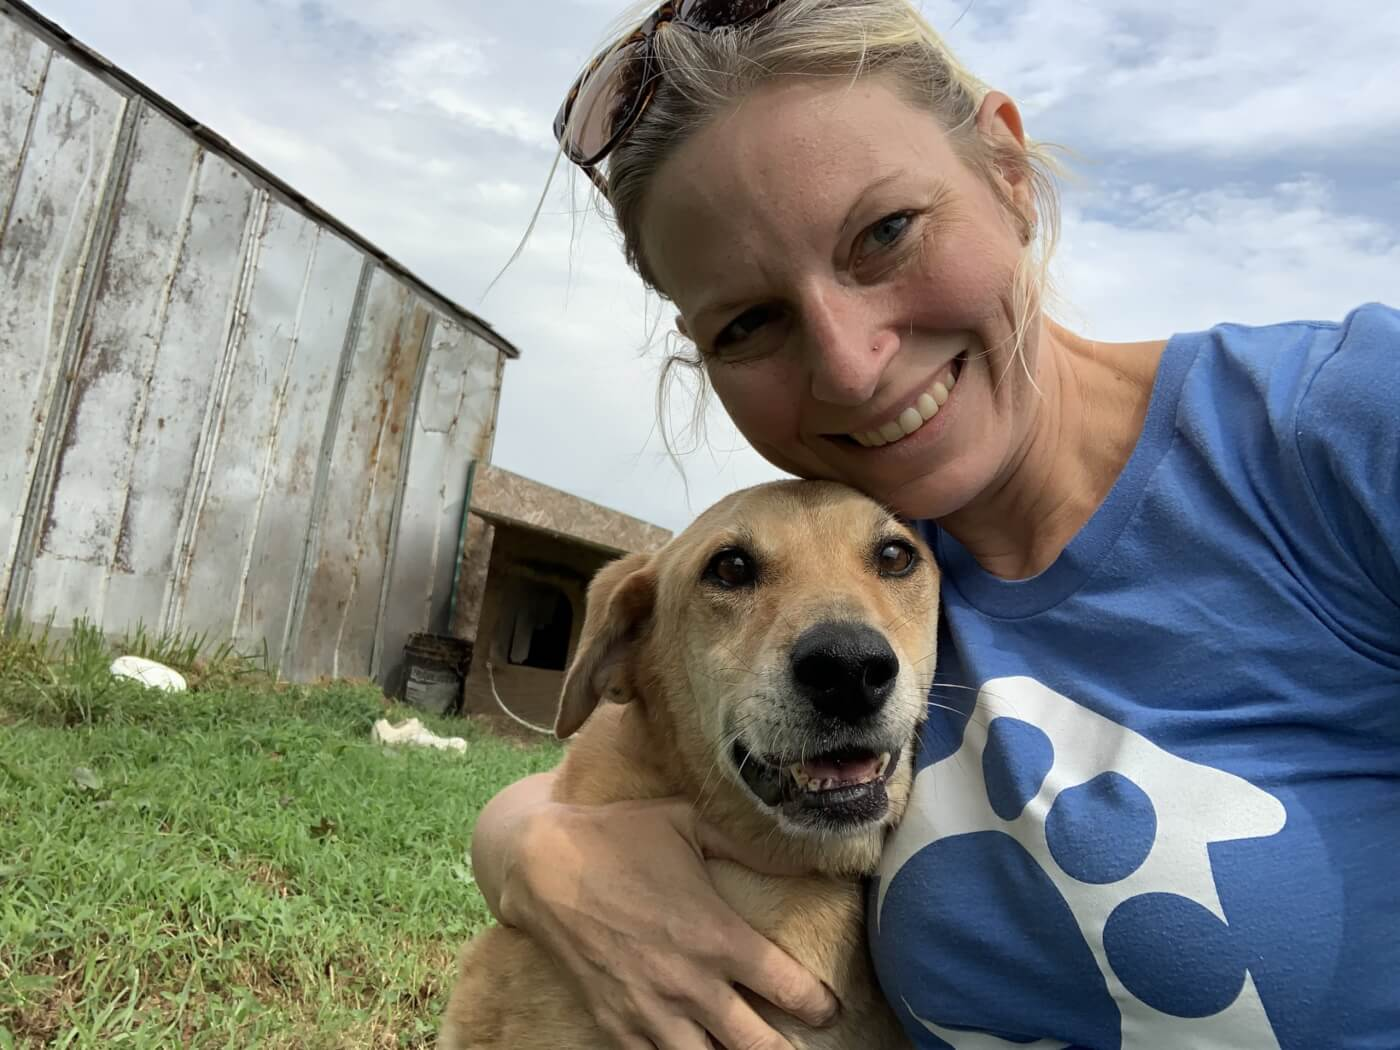 Woman posing with dog in a selfie